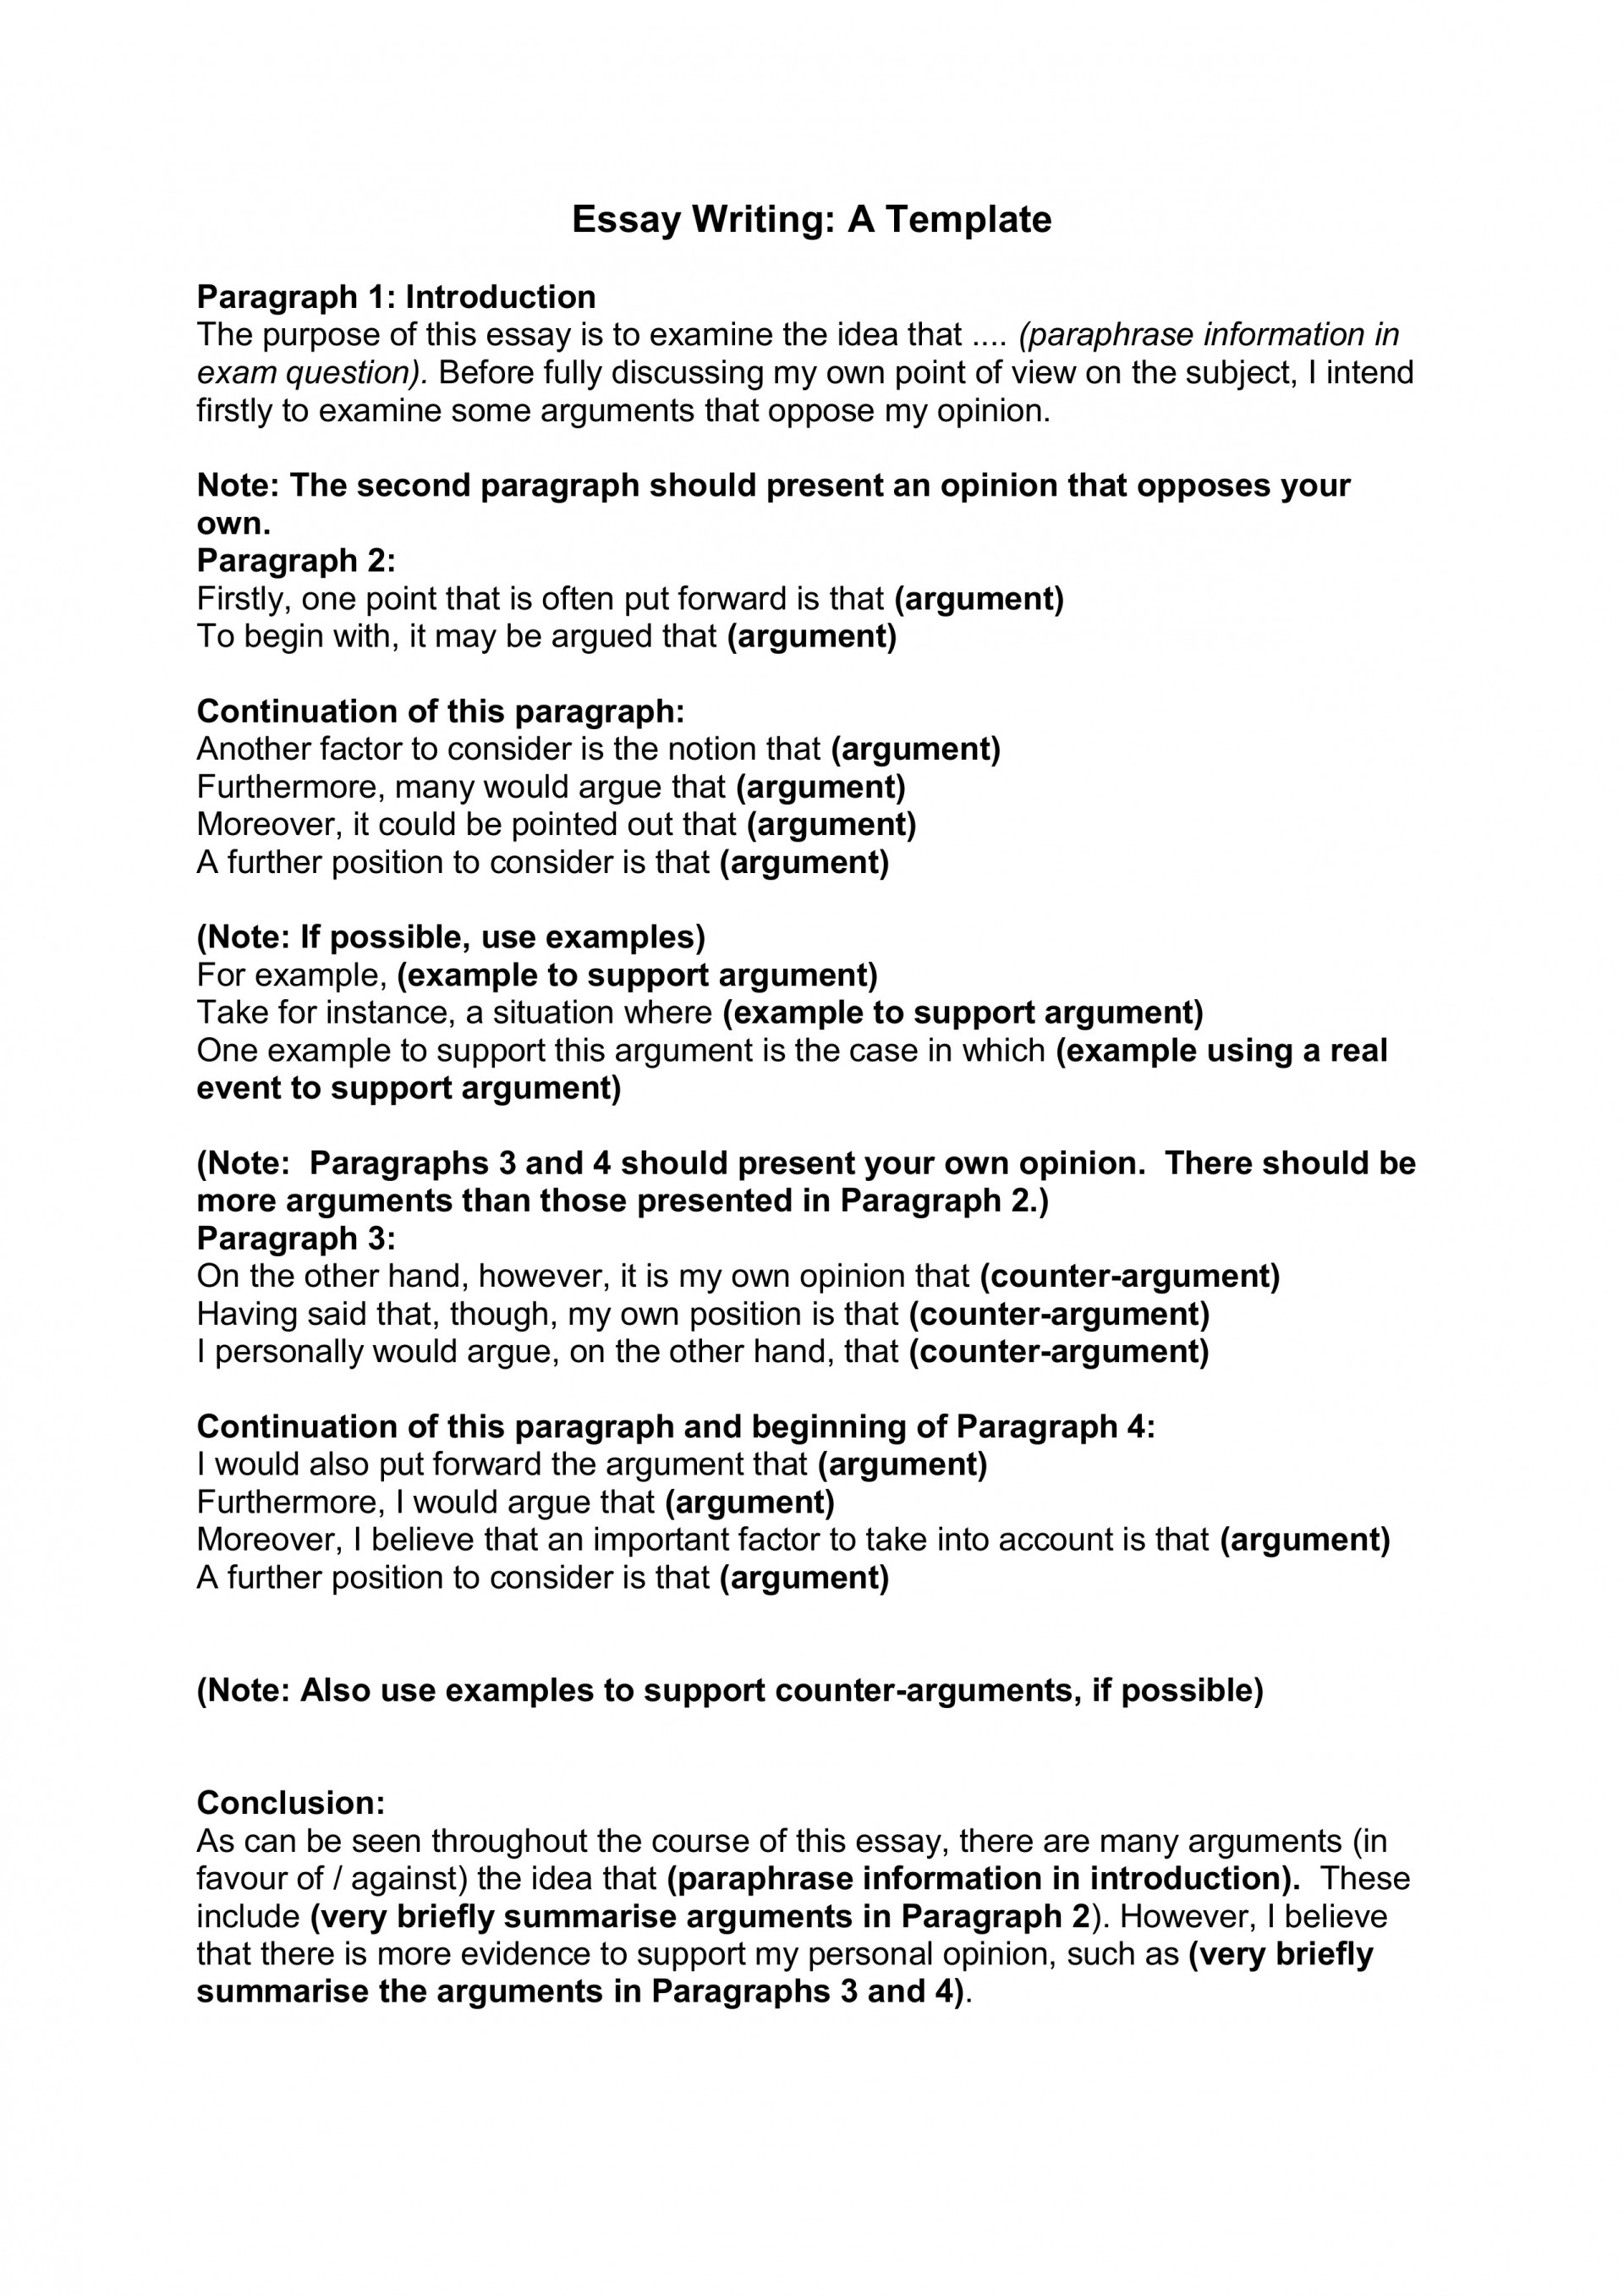 015 Essay Writing Template For Part 2cbu003d Research Paper Order Of Wonderful A Making Mla Reviews 1920